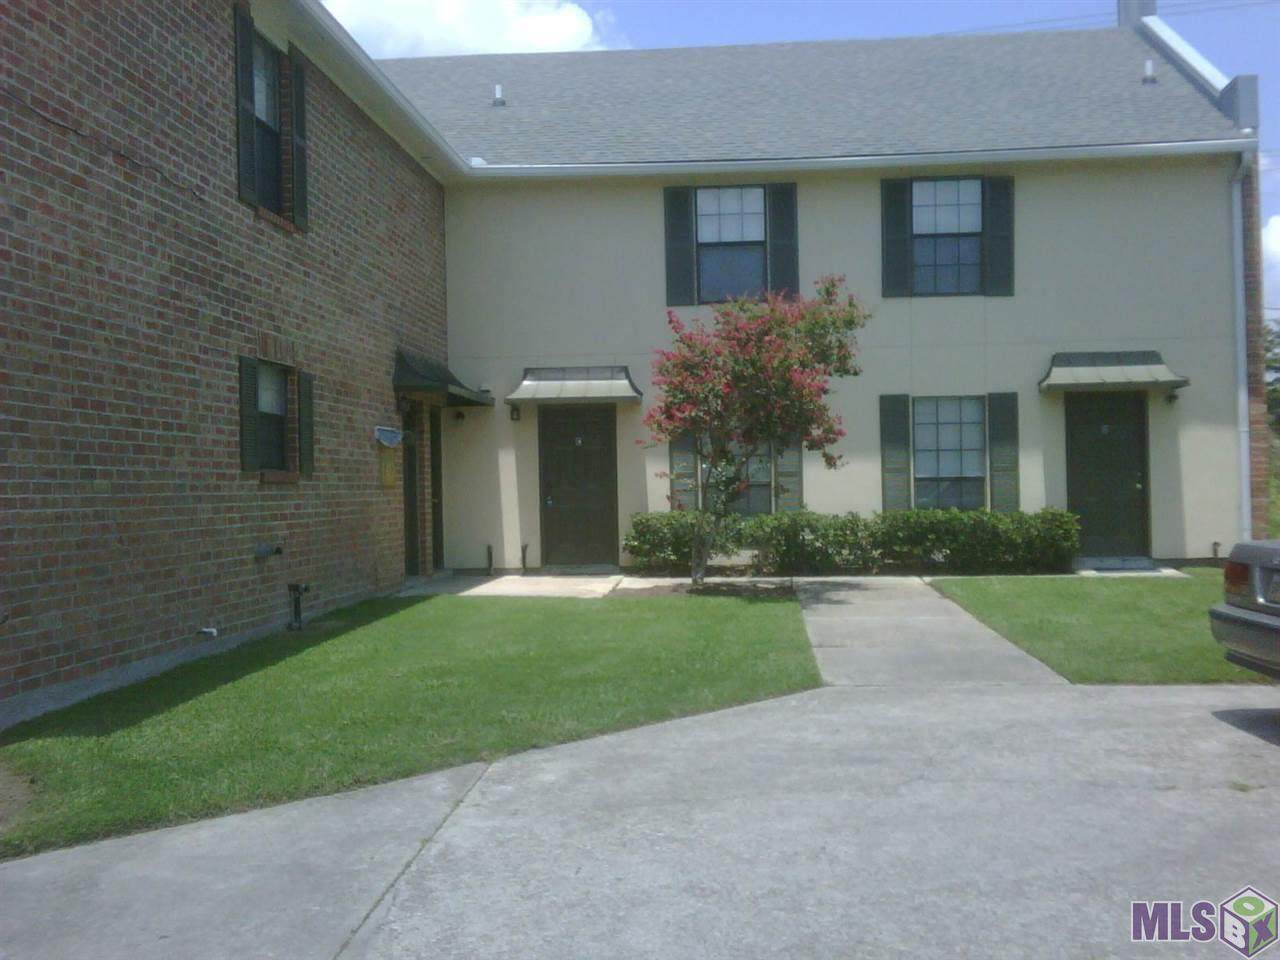 7081 Perkins Place Ct - Photo 1